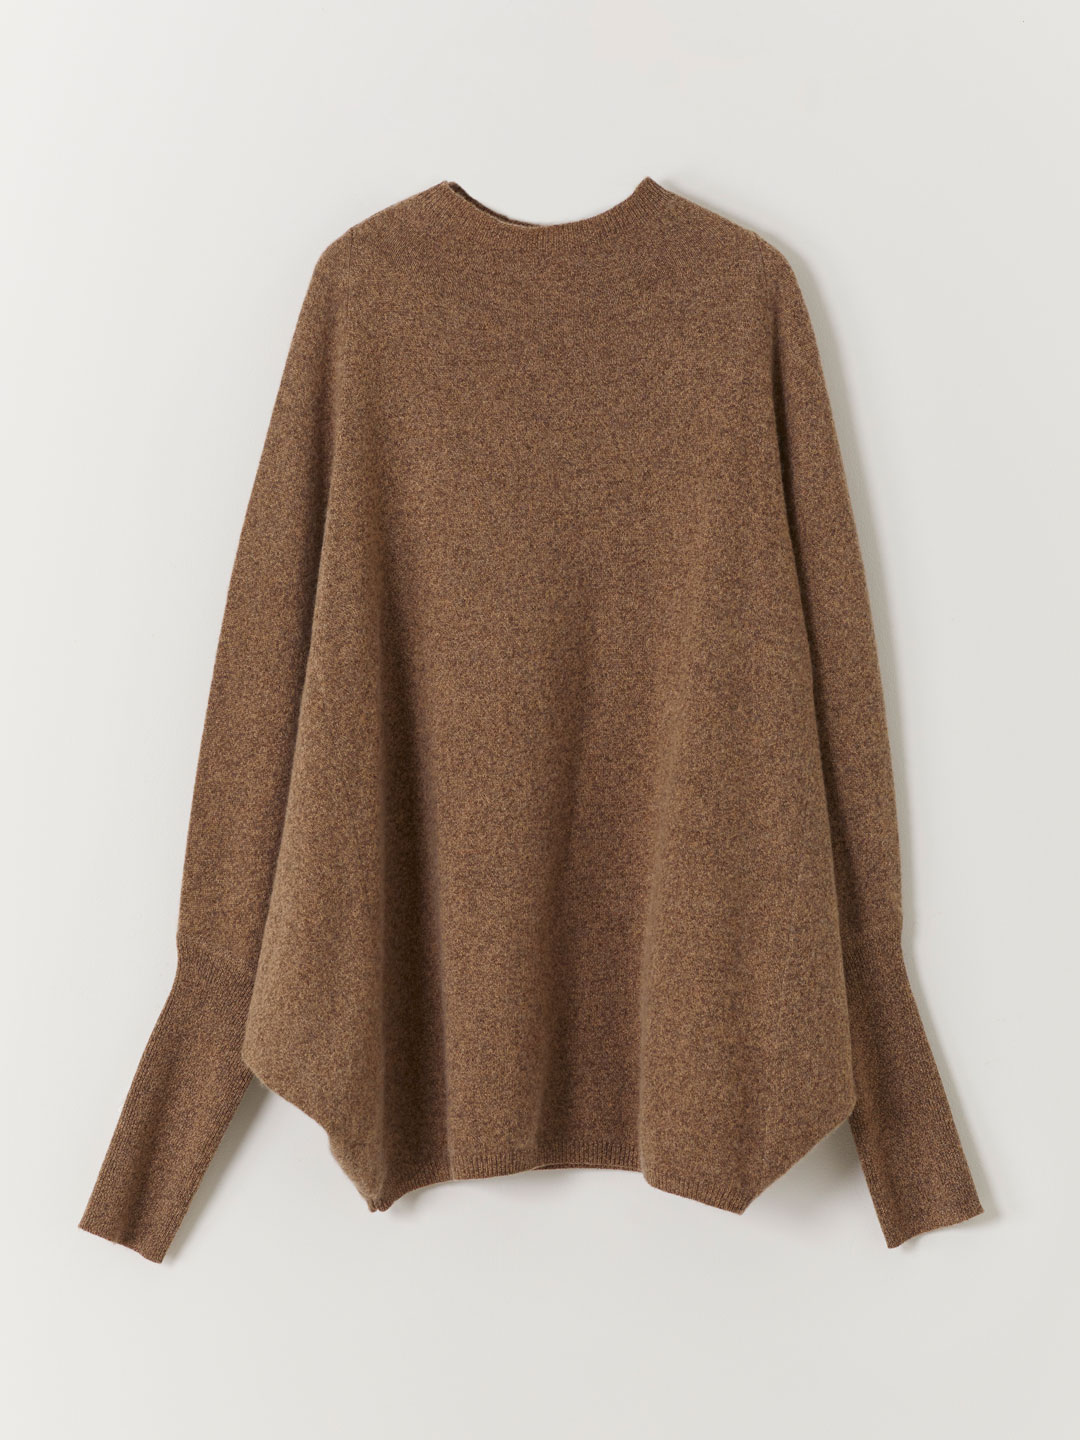 Cashmere Dolman Sleeve Sweater - Brown